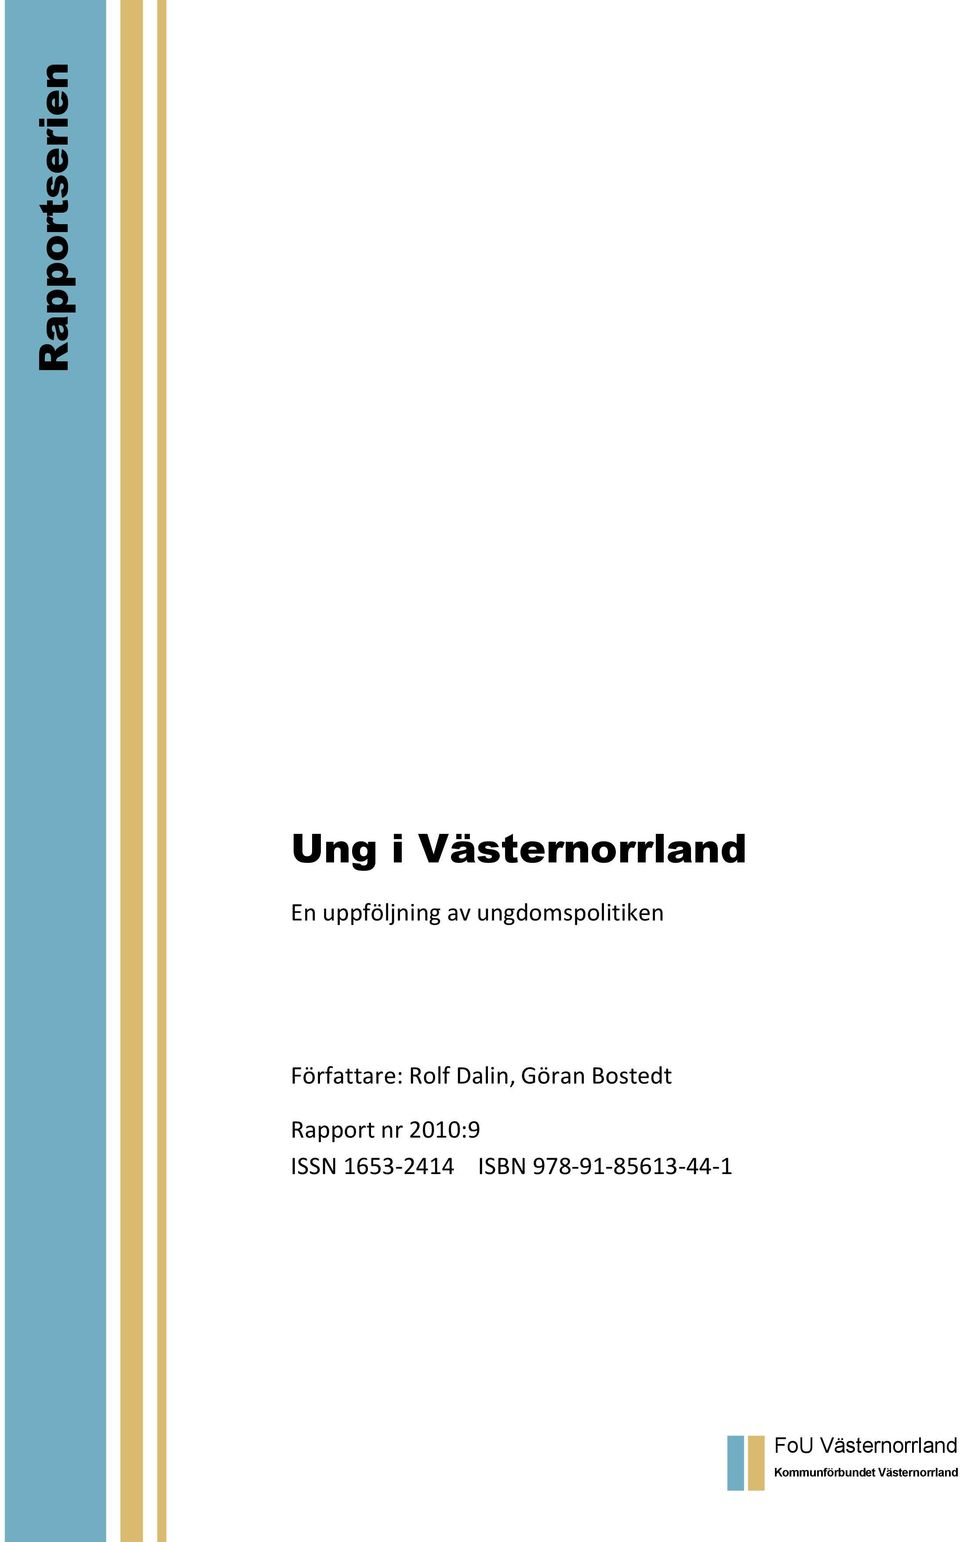 Bostedt Rapport nr 2010:9 ISSN 1653-2414 ISBN